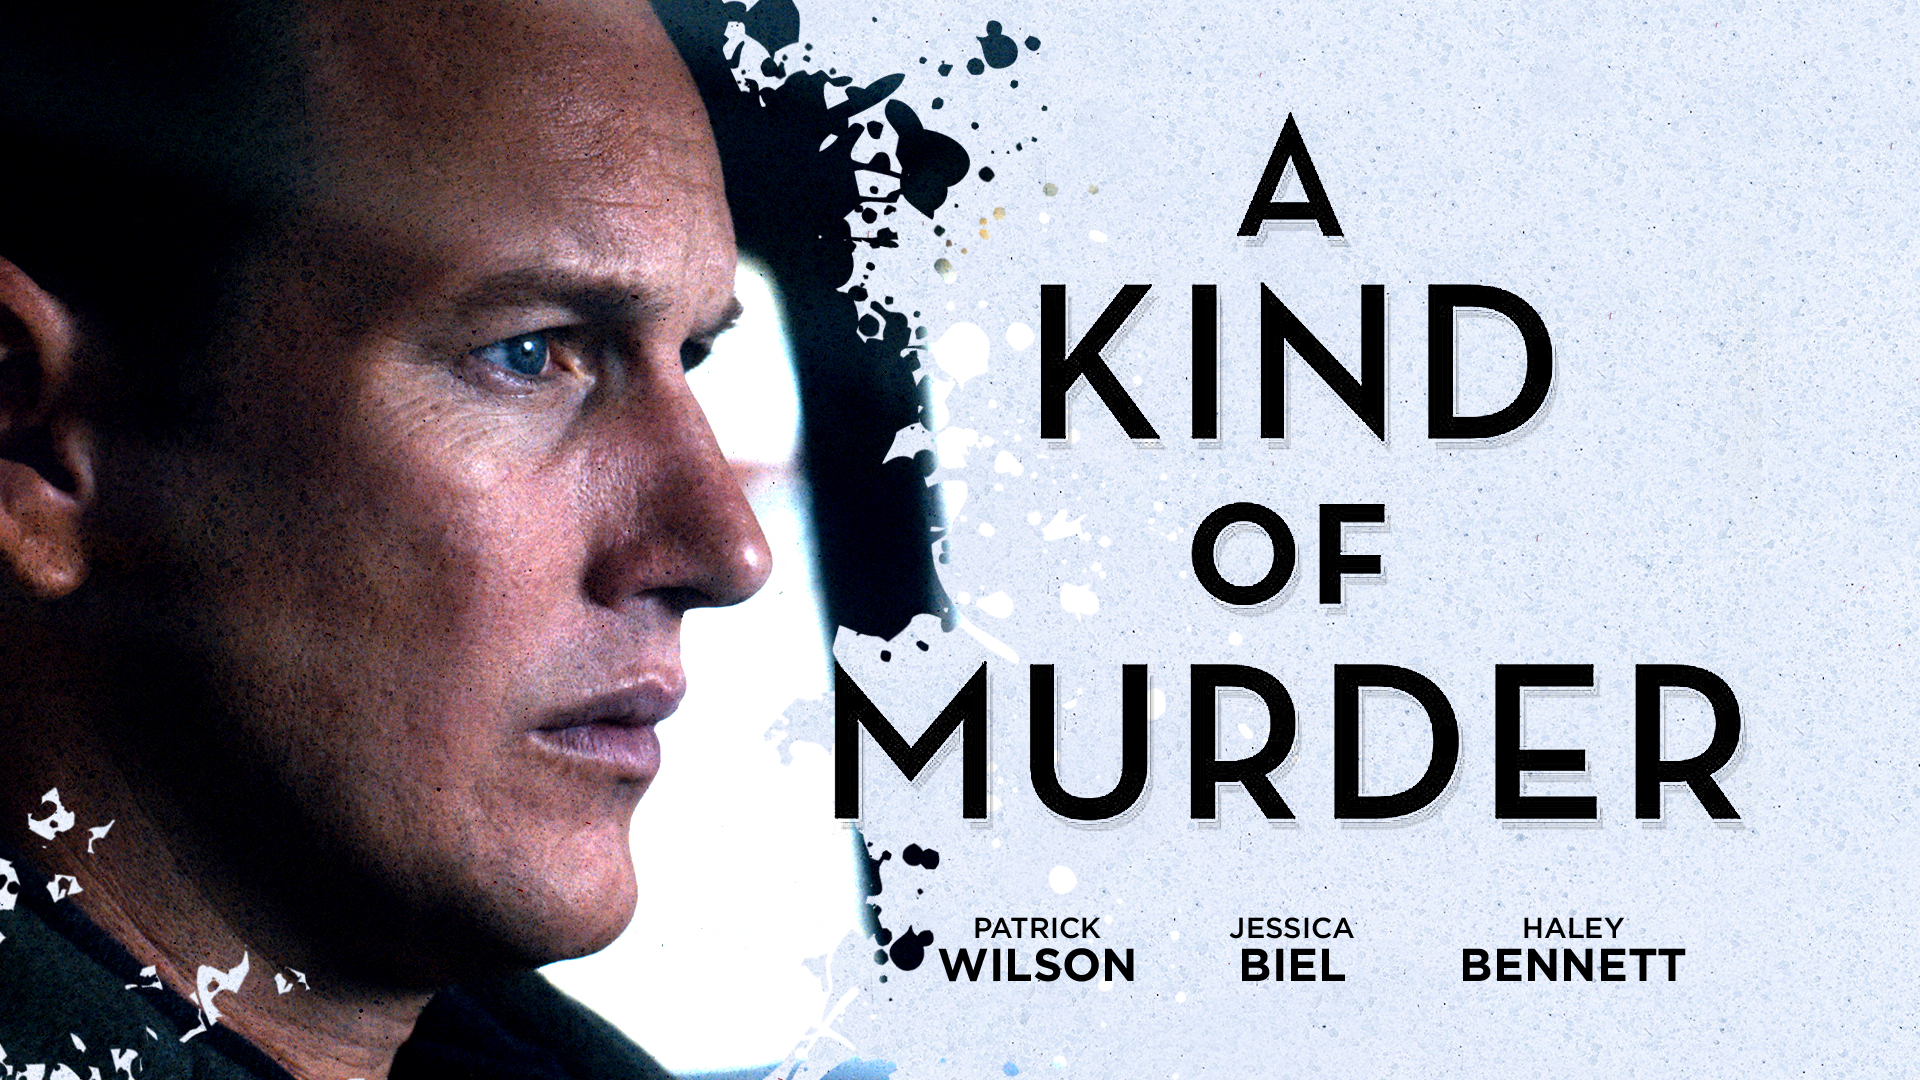 A Kind of Murder - Official Trailer